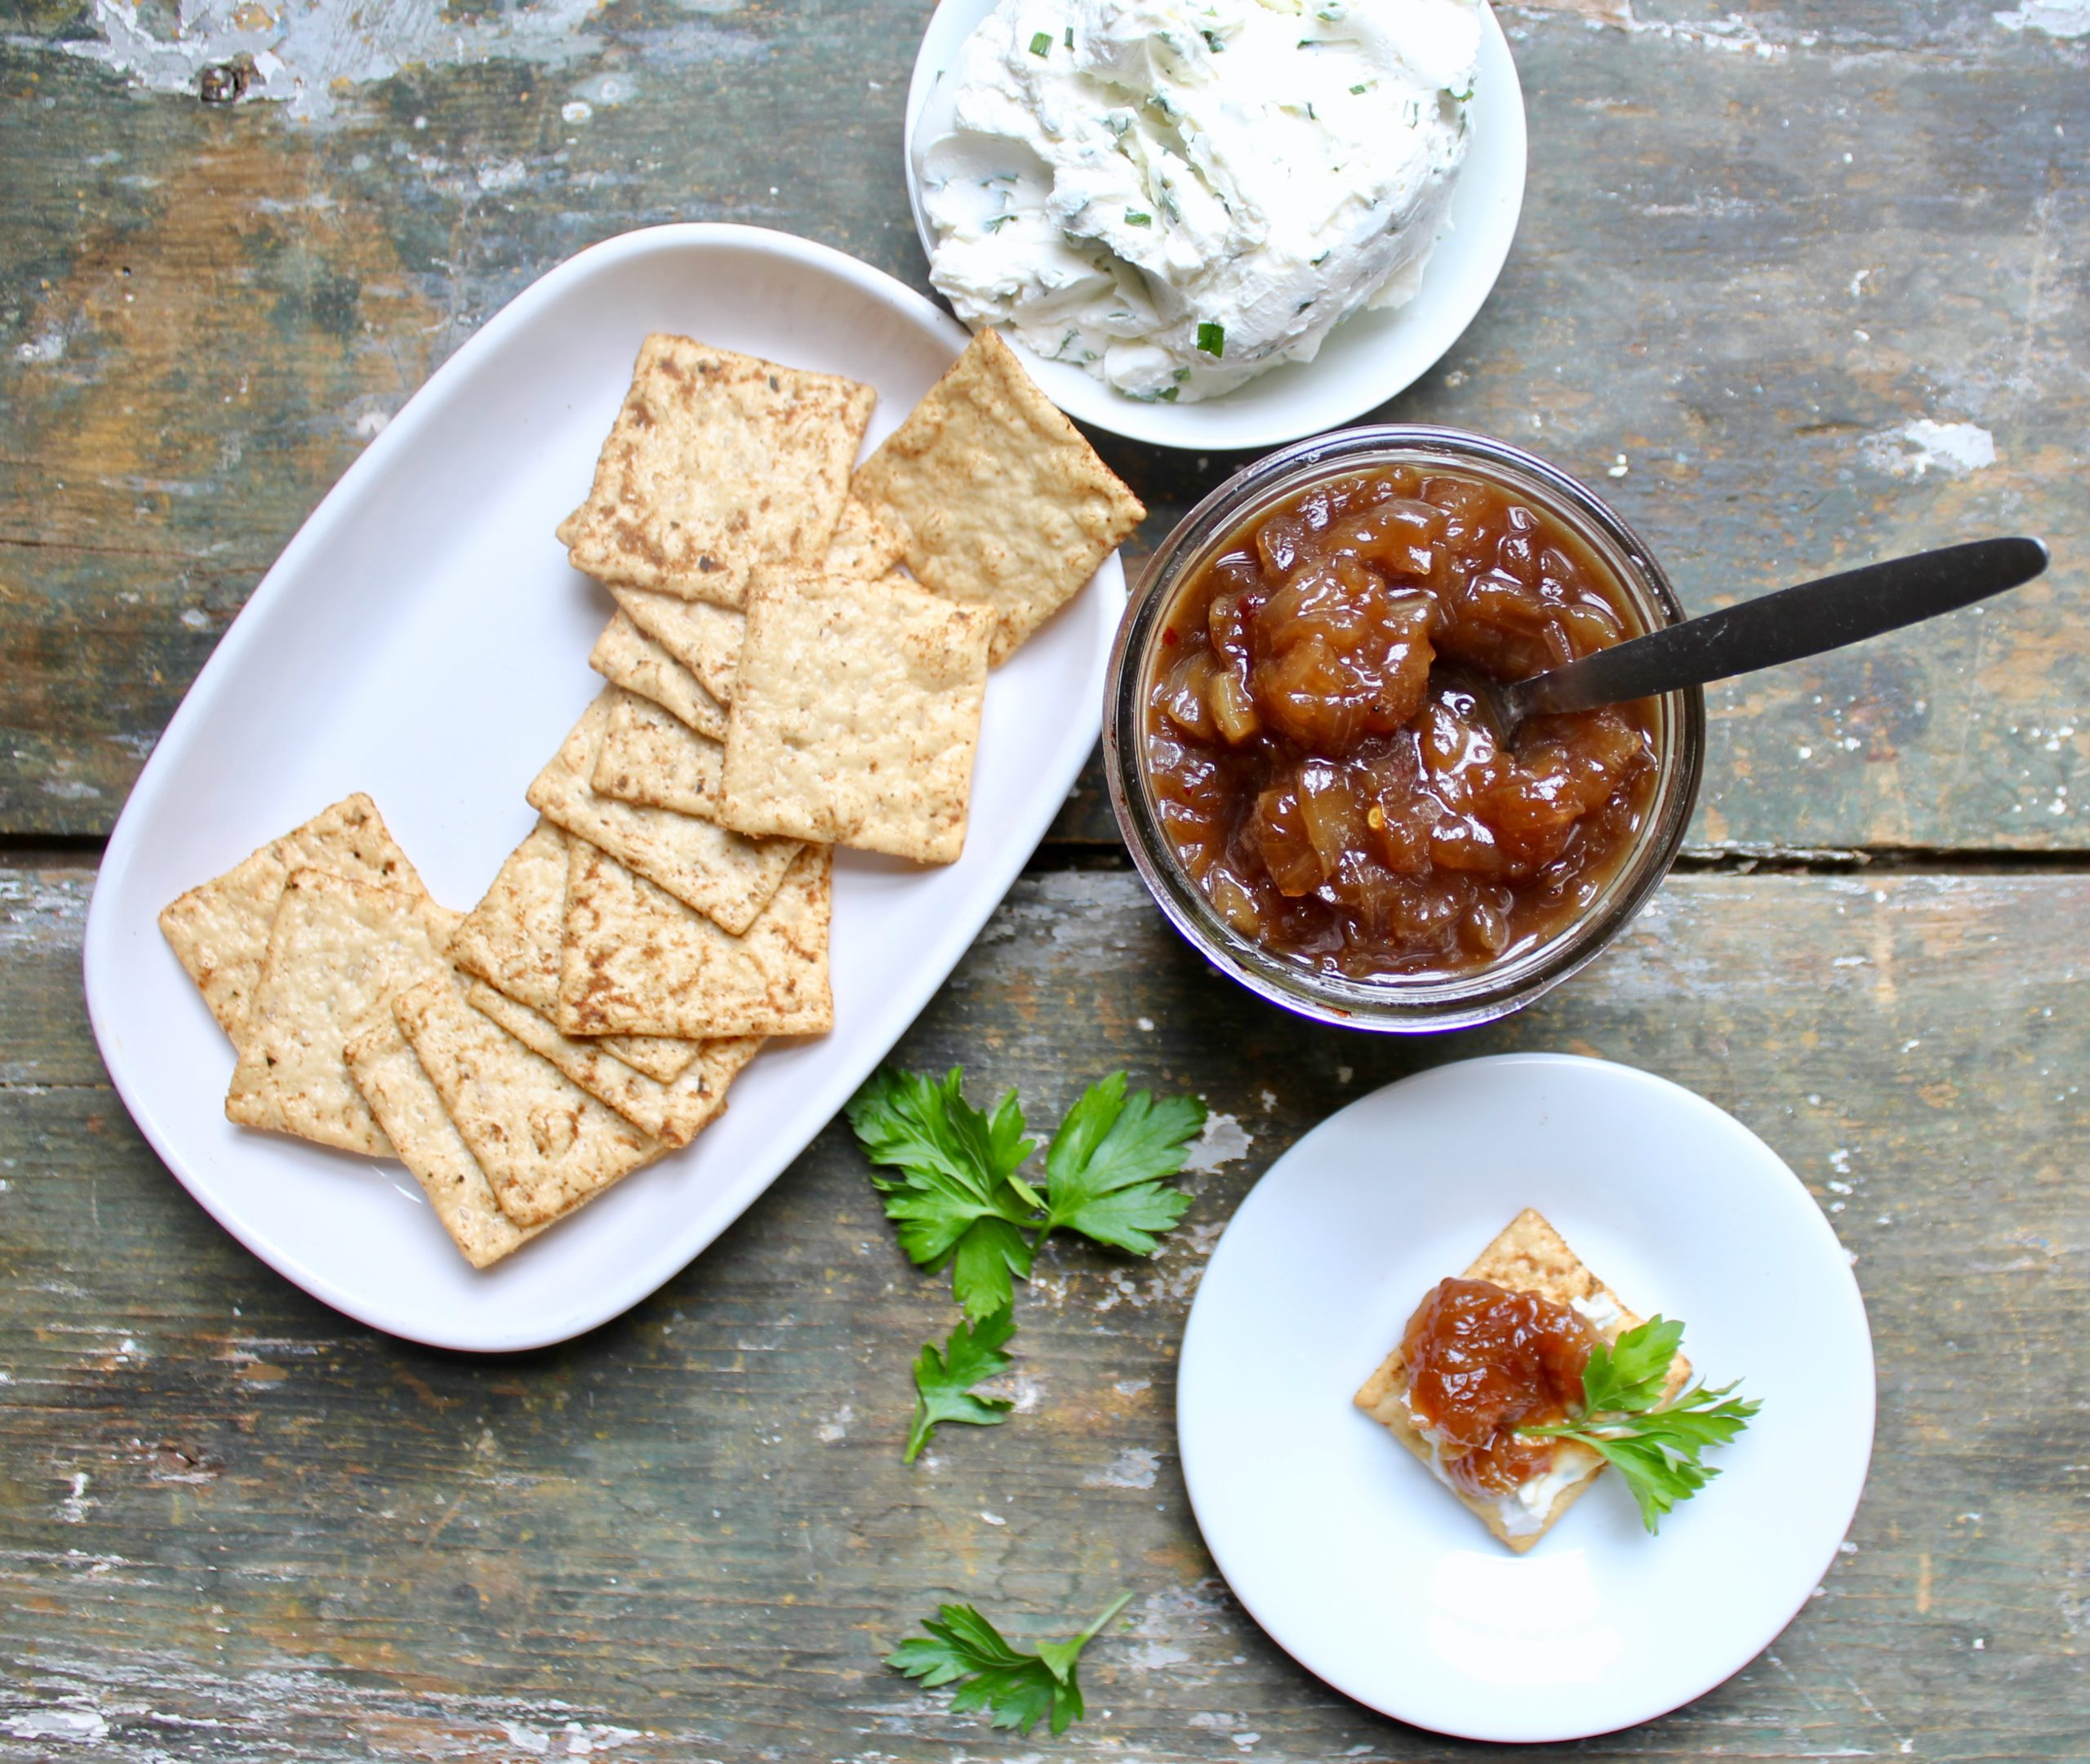 vidalia onion chutney with crackers